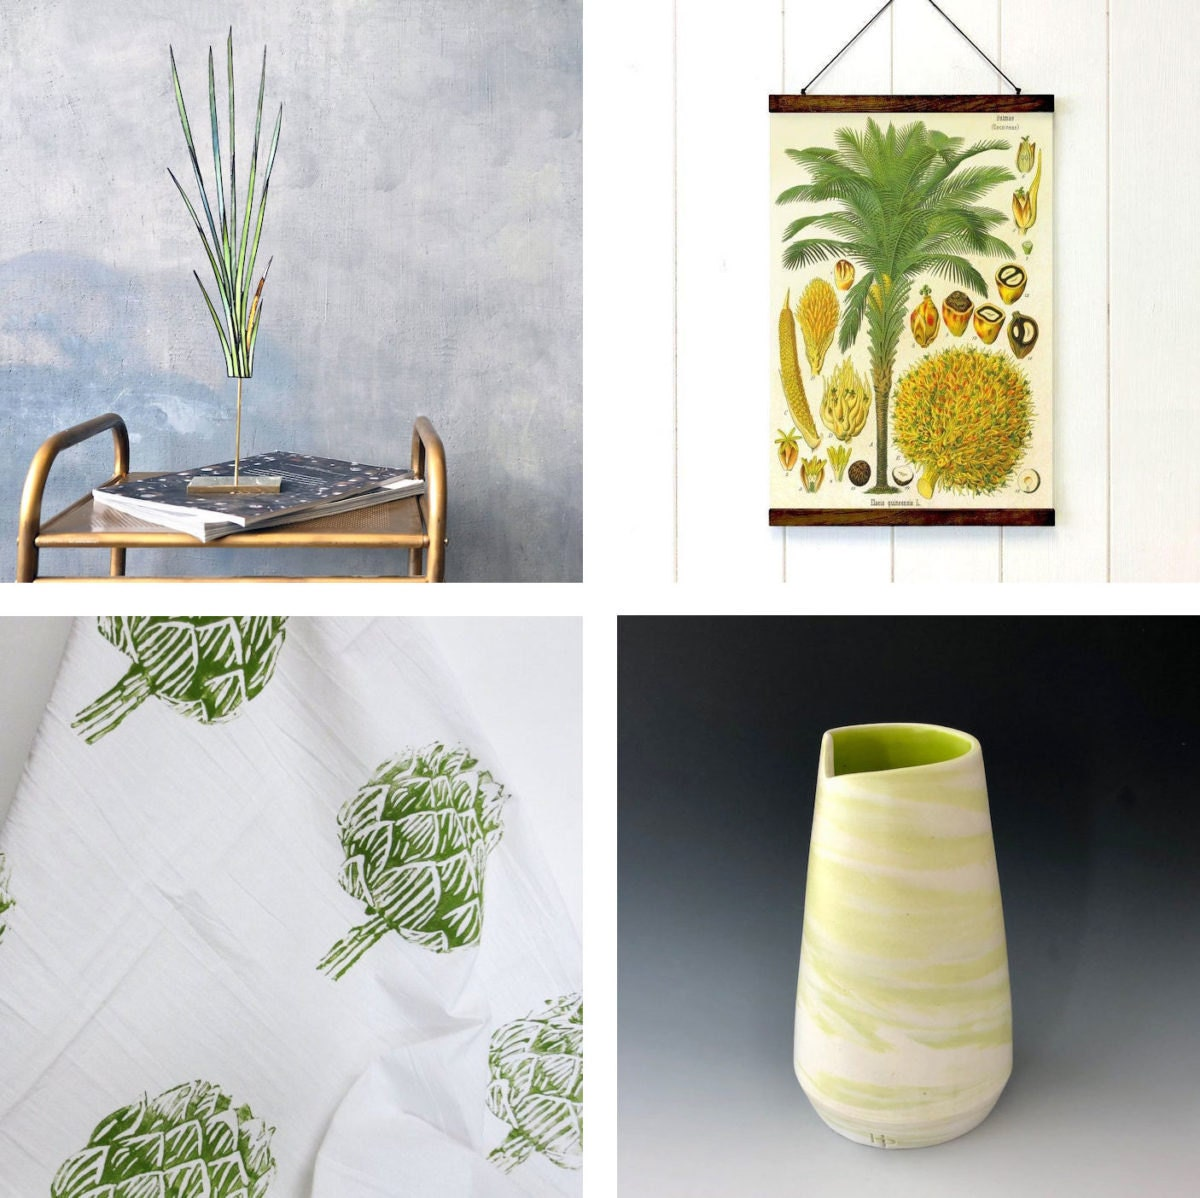 Collage of four peridot-colored home decor items: a stained-glass suncatcher, a botanical print, a ceramic vase, and a printed tea towel